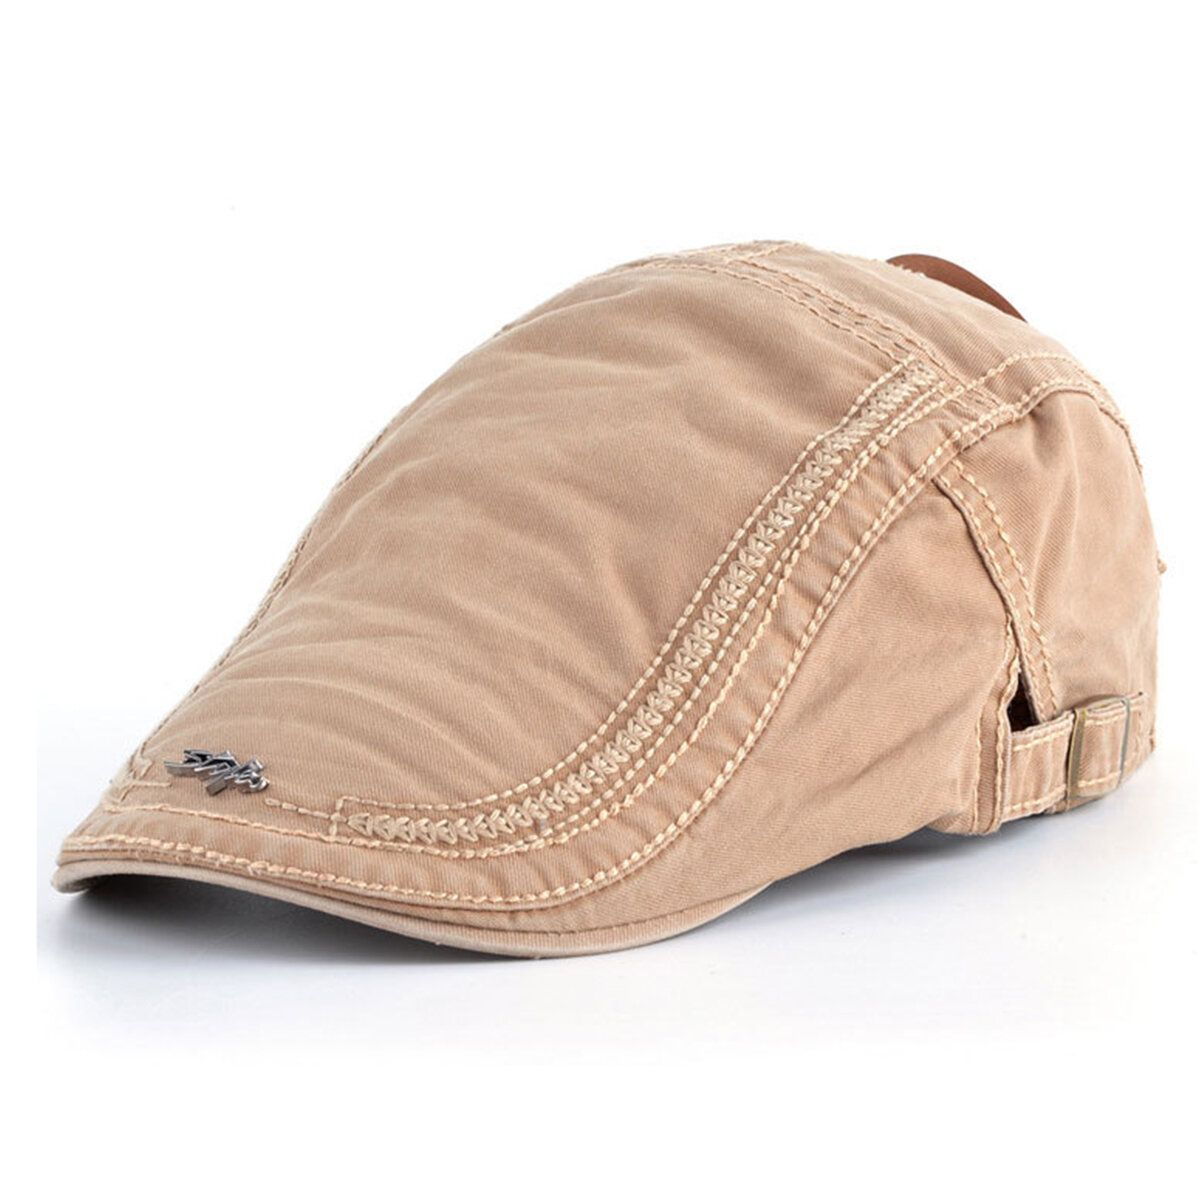 TII US$7.89 Mens Cotton Berets Caps Embroidery Painter Casual Outdoor Visor Forward Hat